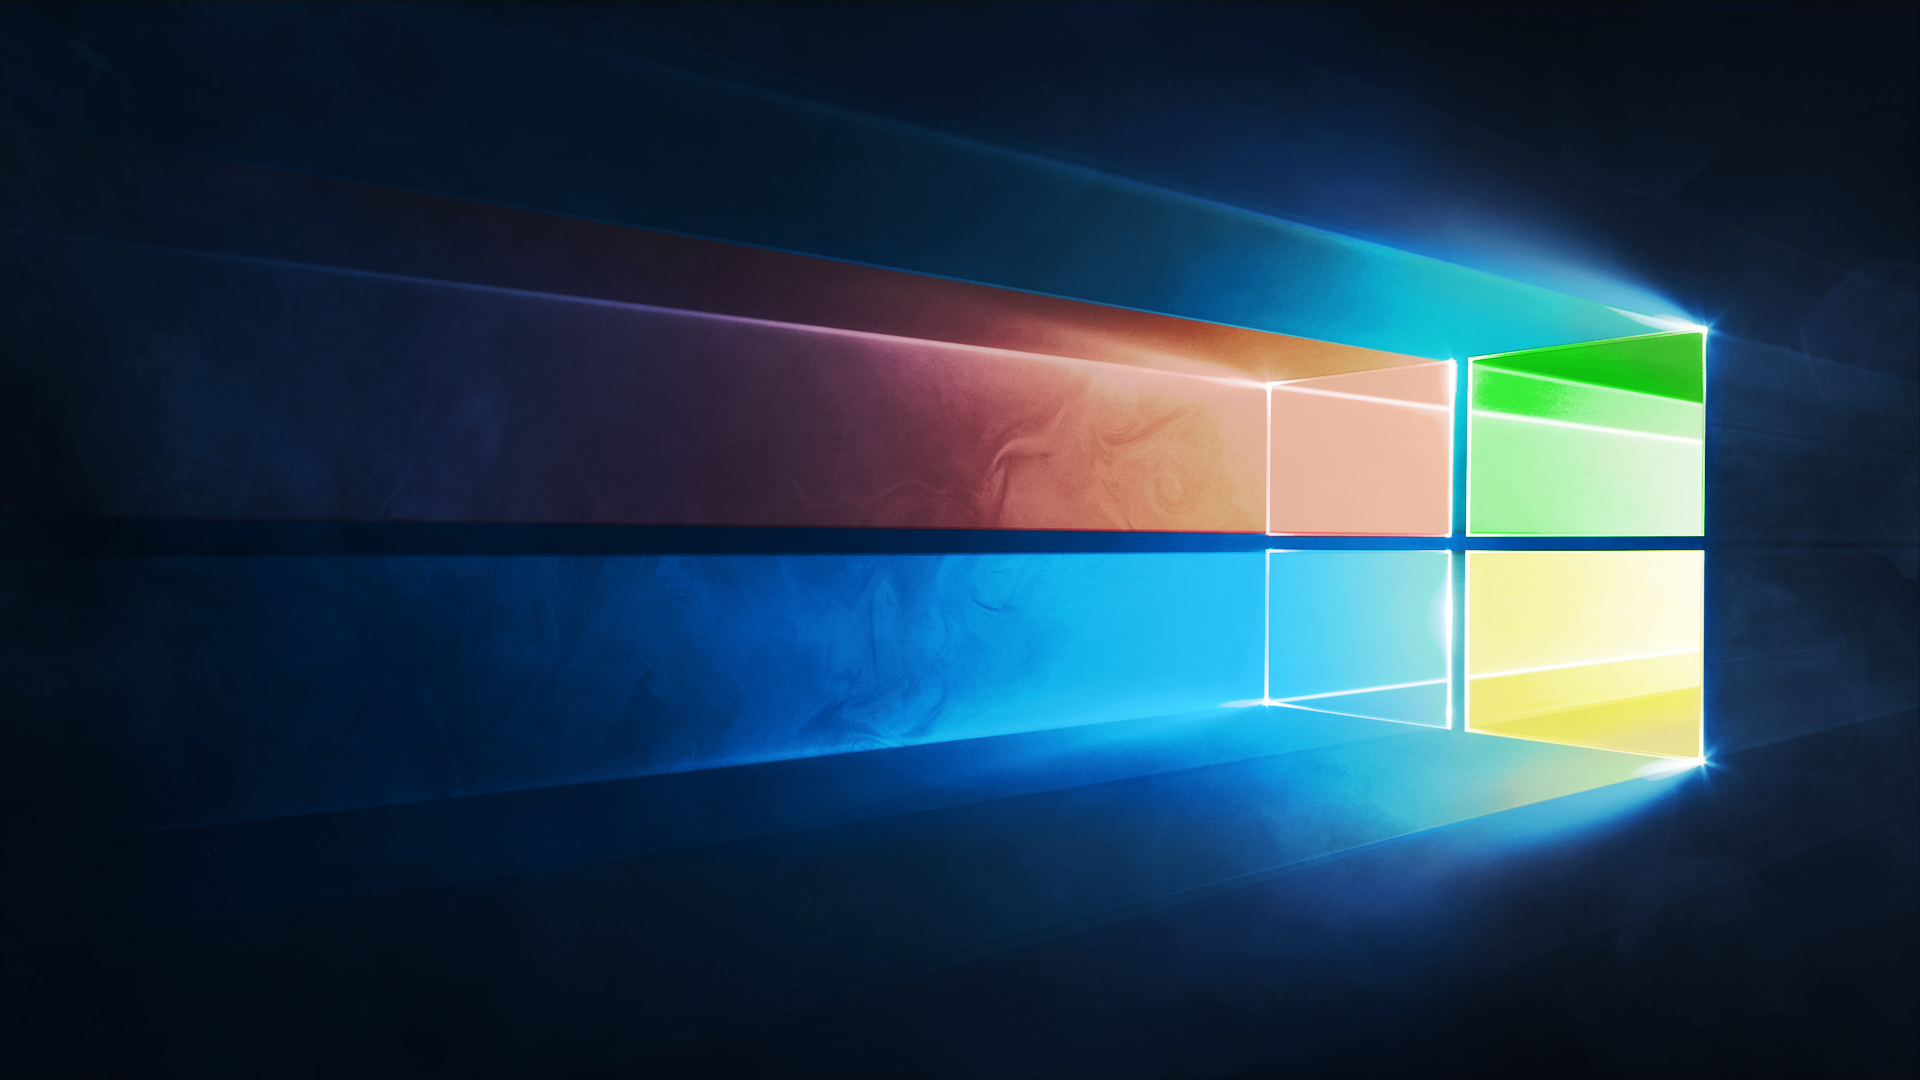 42 Windows10 Wallpapers On Wallpapersafari